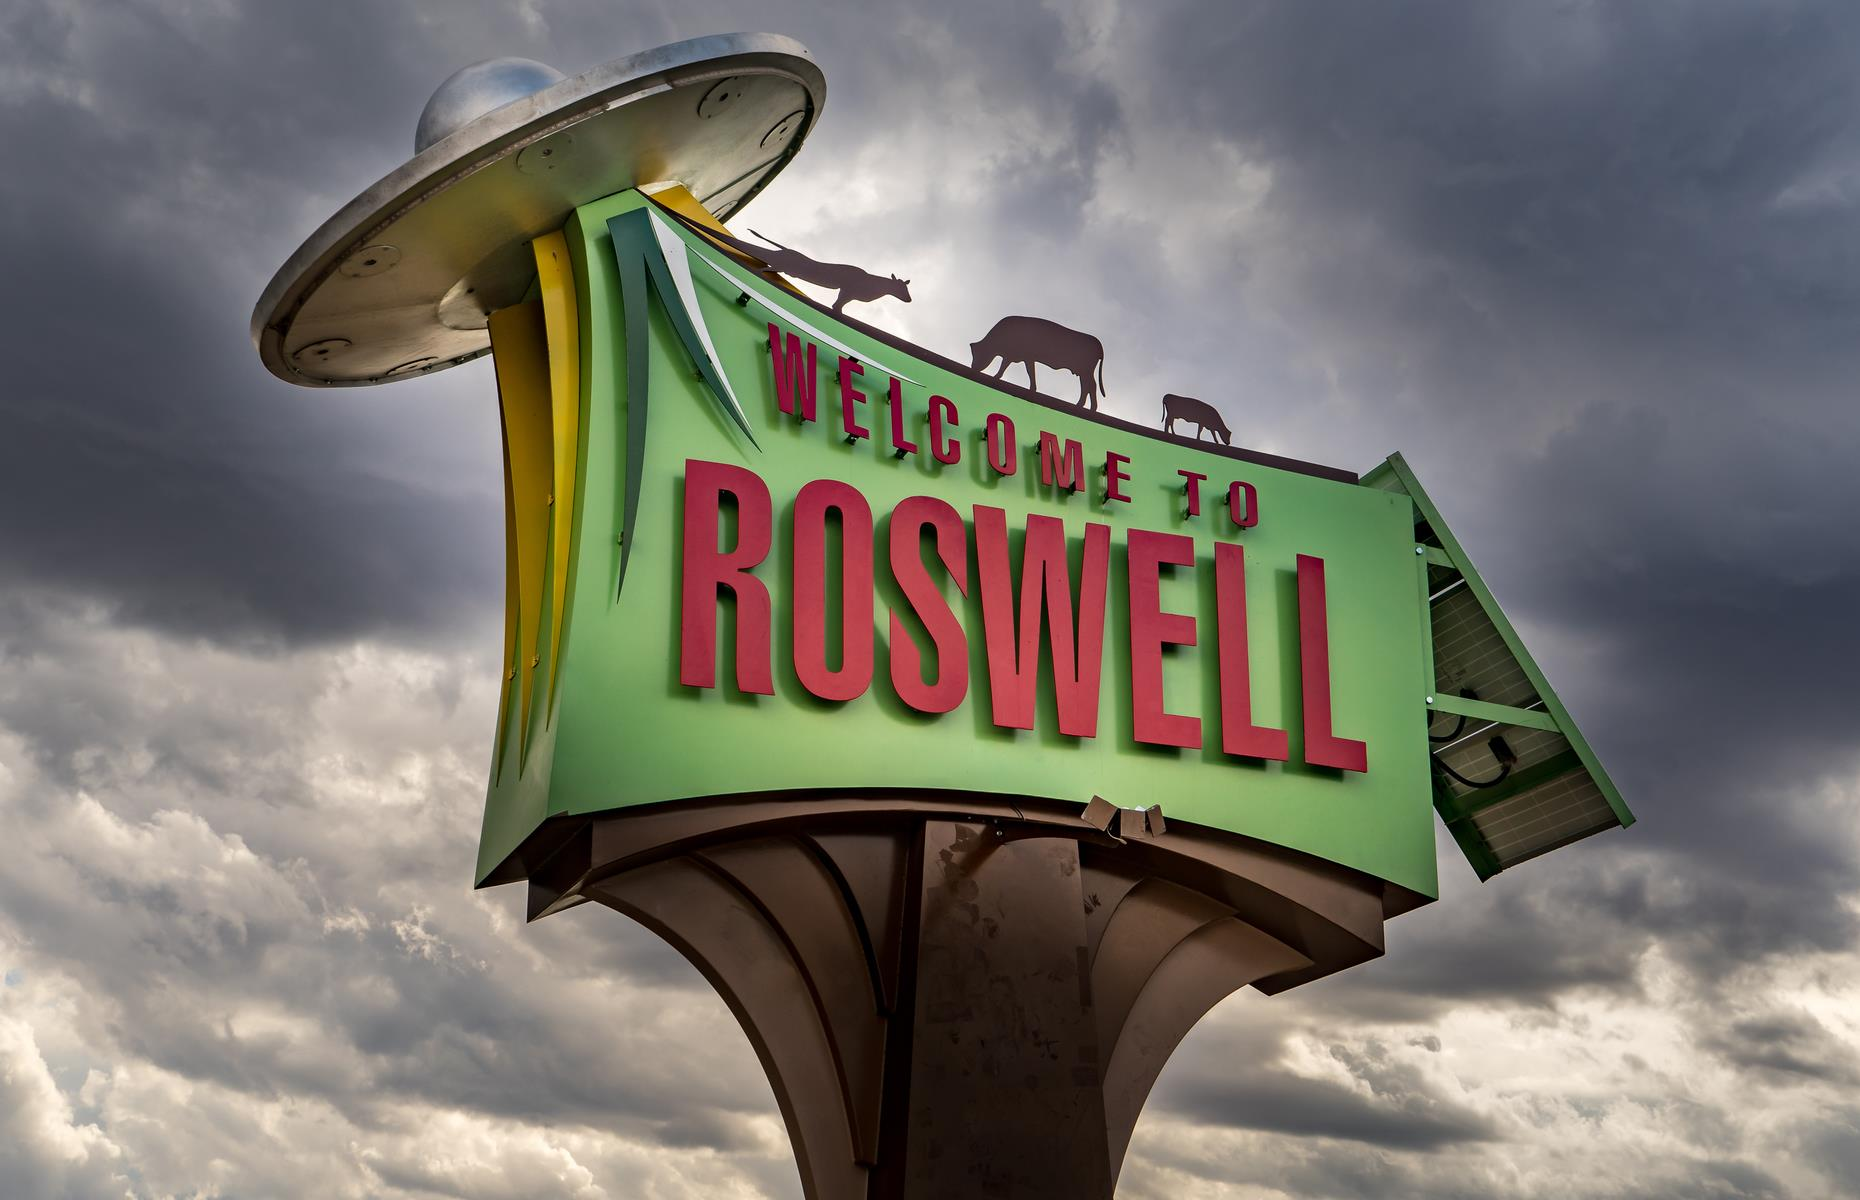 Slide 12 of 26: It's almost impossible to hear the name 'Roswell' and not think 'aliens', or at least UFOs. This relatively small, previously inconspicuous New Mexico city hit the otherworldly big time in 1947 when a ranch worker claimed to have discovered the debris of a flying saucer crash. The mystery was explained away as a weather balloon crash, though many didn't believe the story – and still don't. Roswell continues to be the embodiment of alien conspiracy theories and embraces its role with dozens of gift shops, museums and an annual UFO Festival.